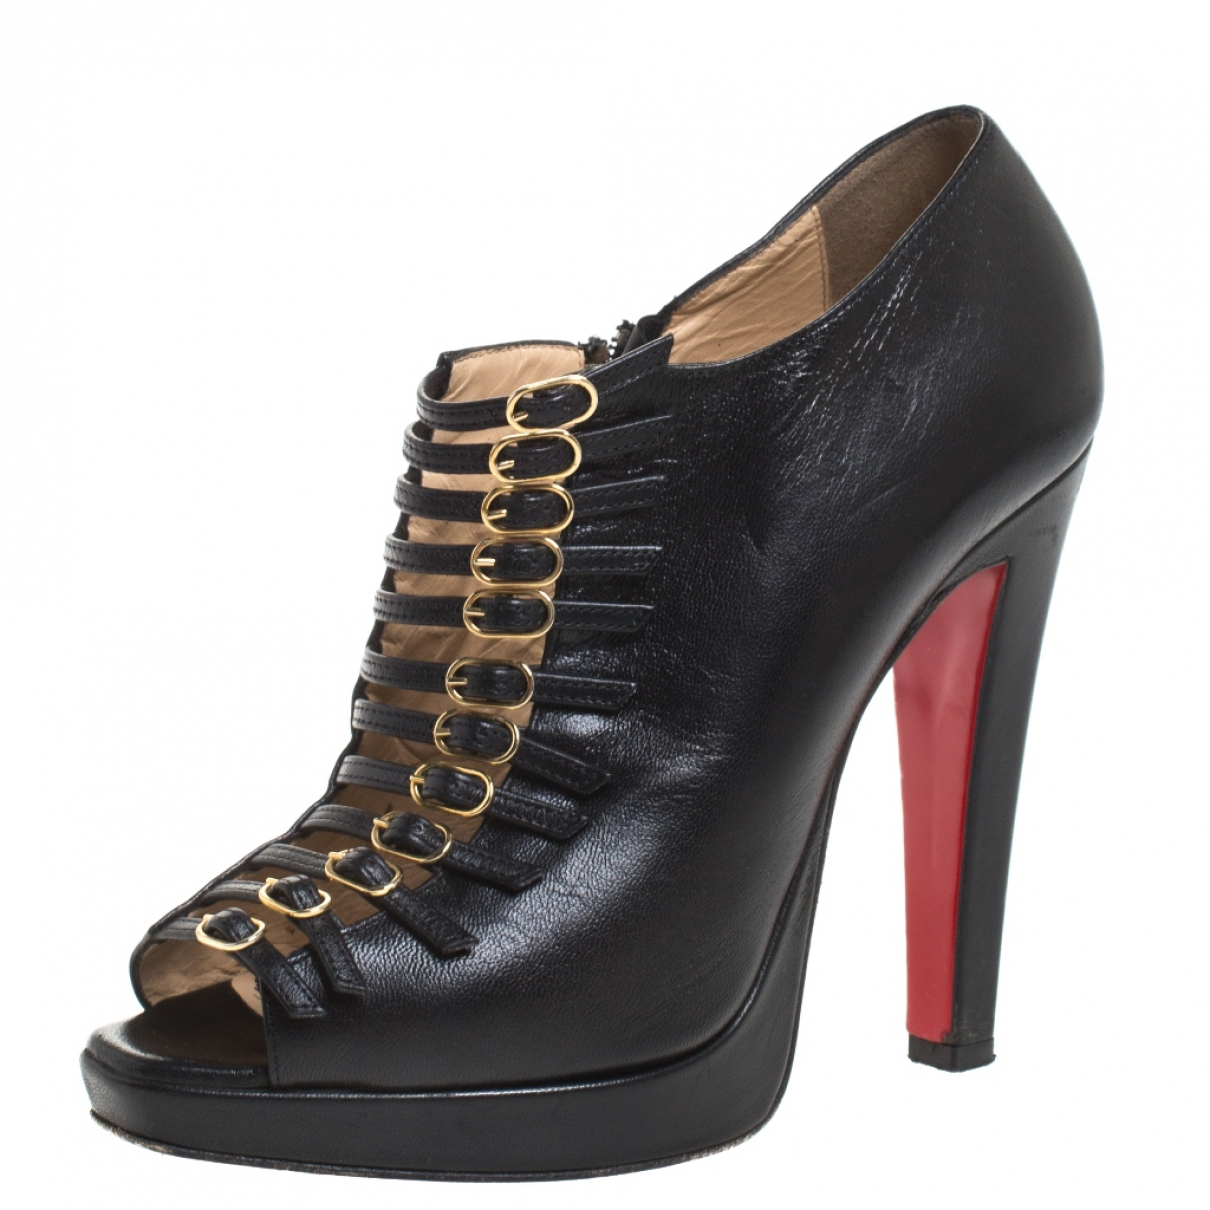 Christian Louboutin N Black Leather Ankle boots for Women 7 US